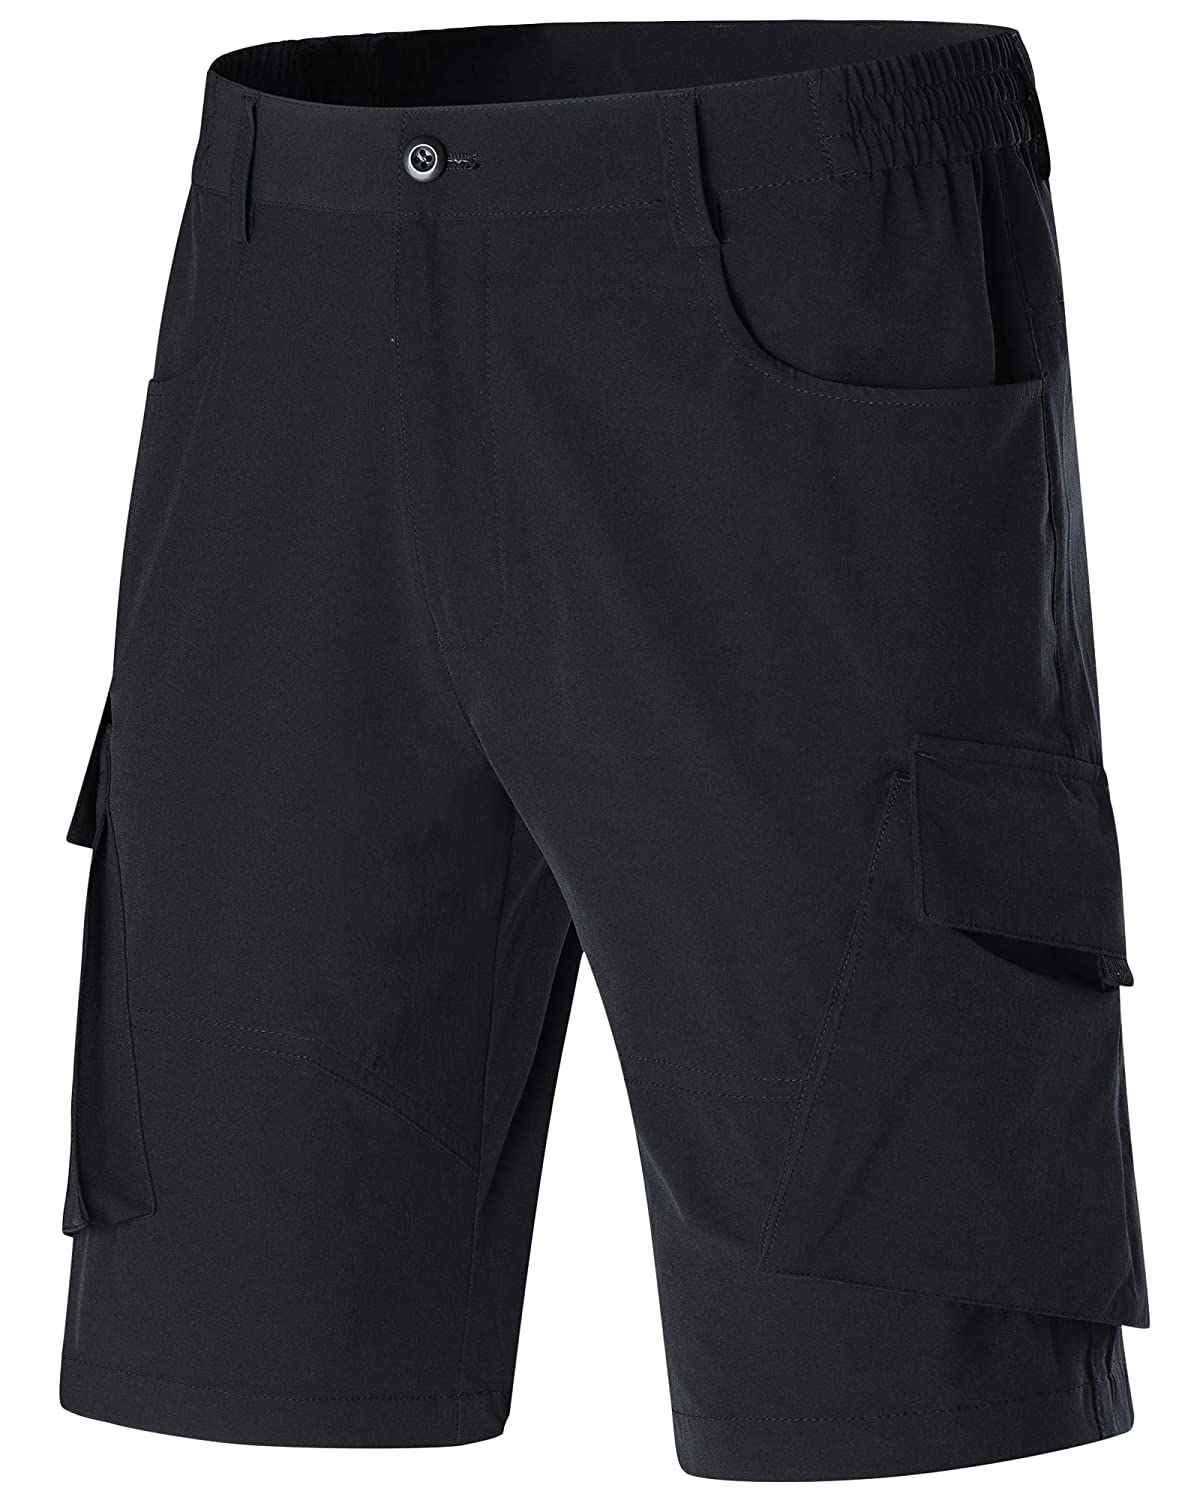 MAGCOMSEN Mens Hiking Shorts Elastic-Waist Lightweight Quick Dry Outdoor Cargo Shorts with 5 Pockets